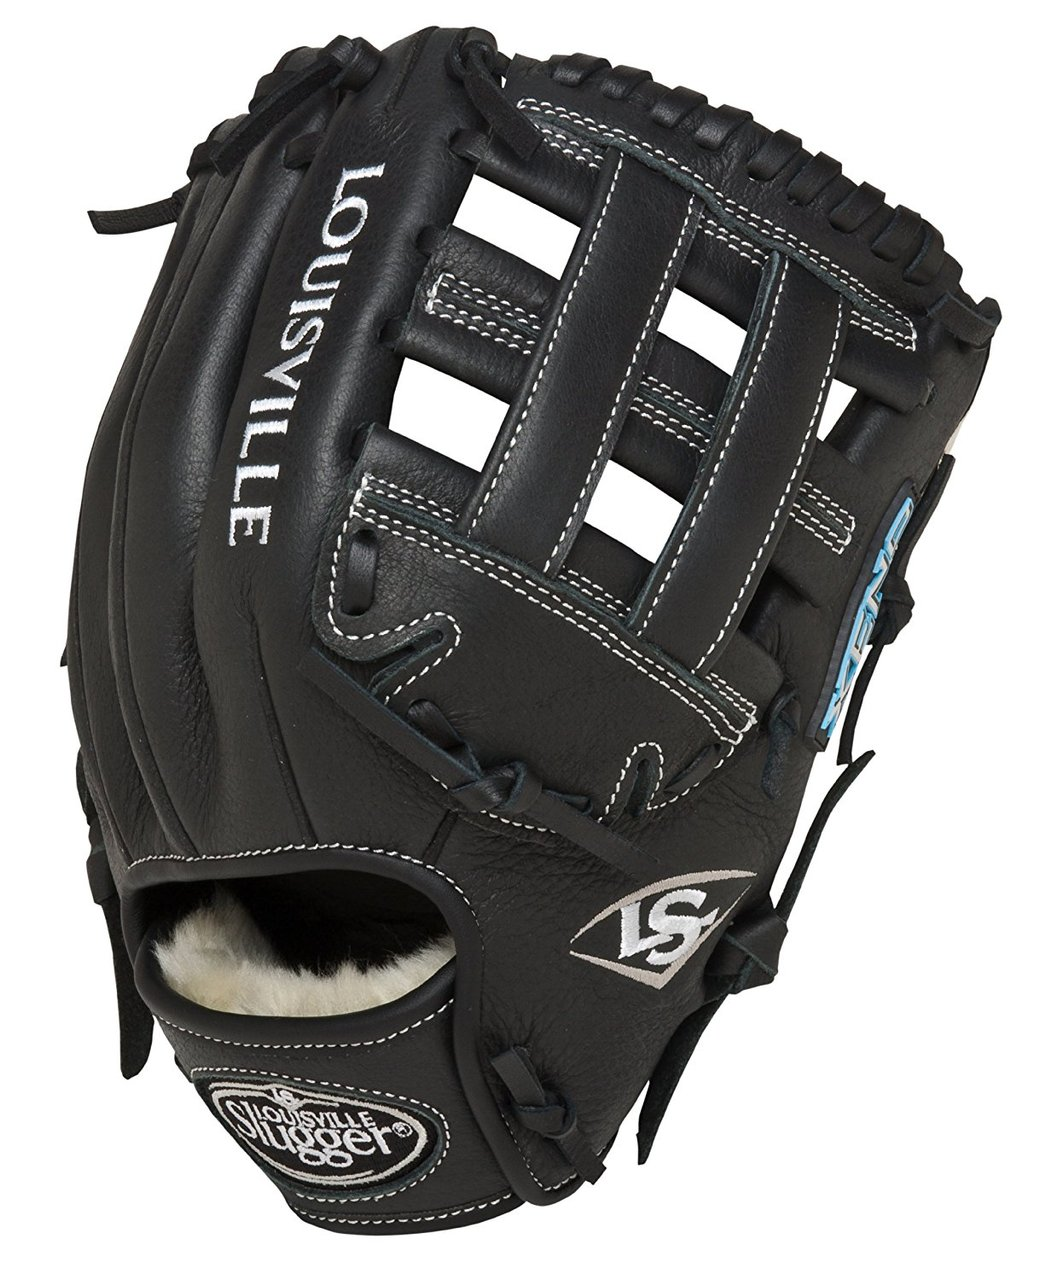 louisville-slugger-11-75-inch-fg-xeno-softball-infielders-gloves-black-right-hand-throw FGXN14-BK117-RightHandThrow  044277007980 Size 11.75 Softball Infielders Gloves Premium grade oil-treated leather for soft